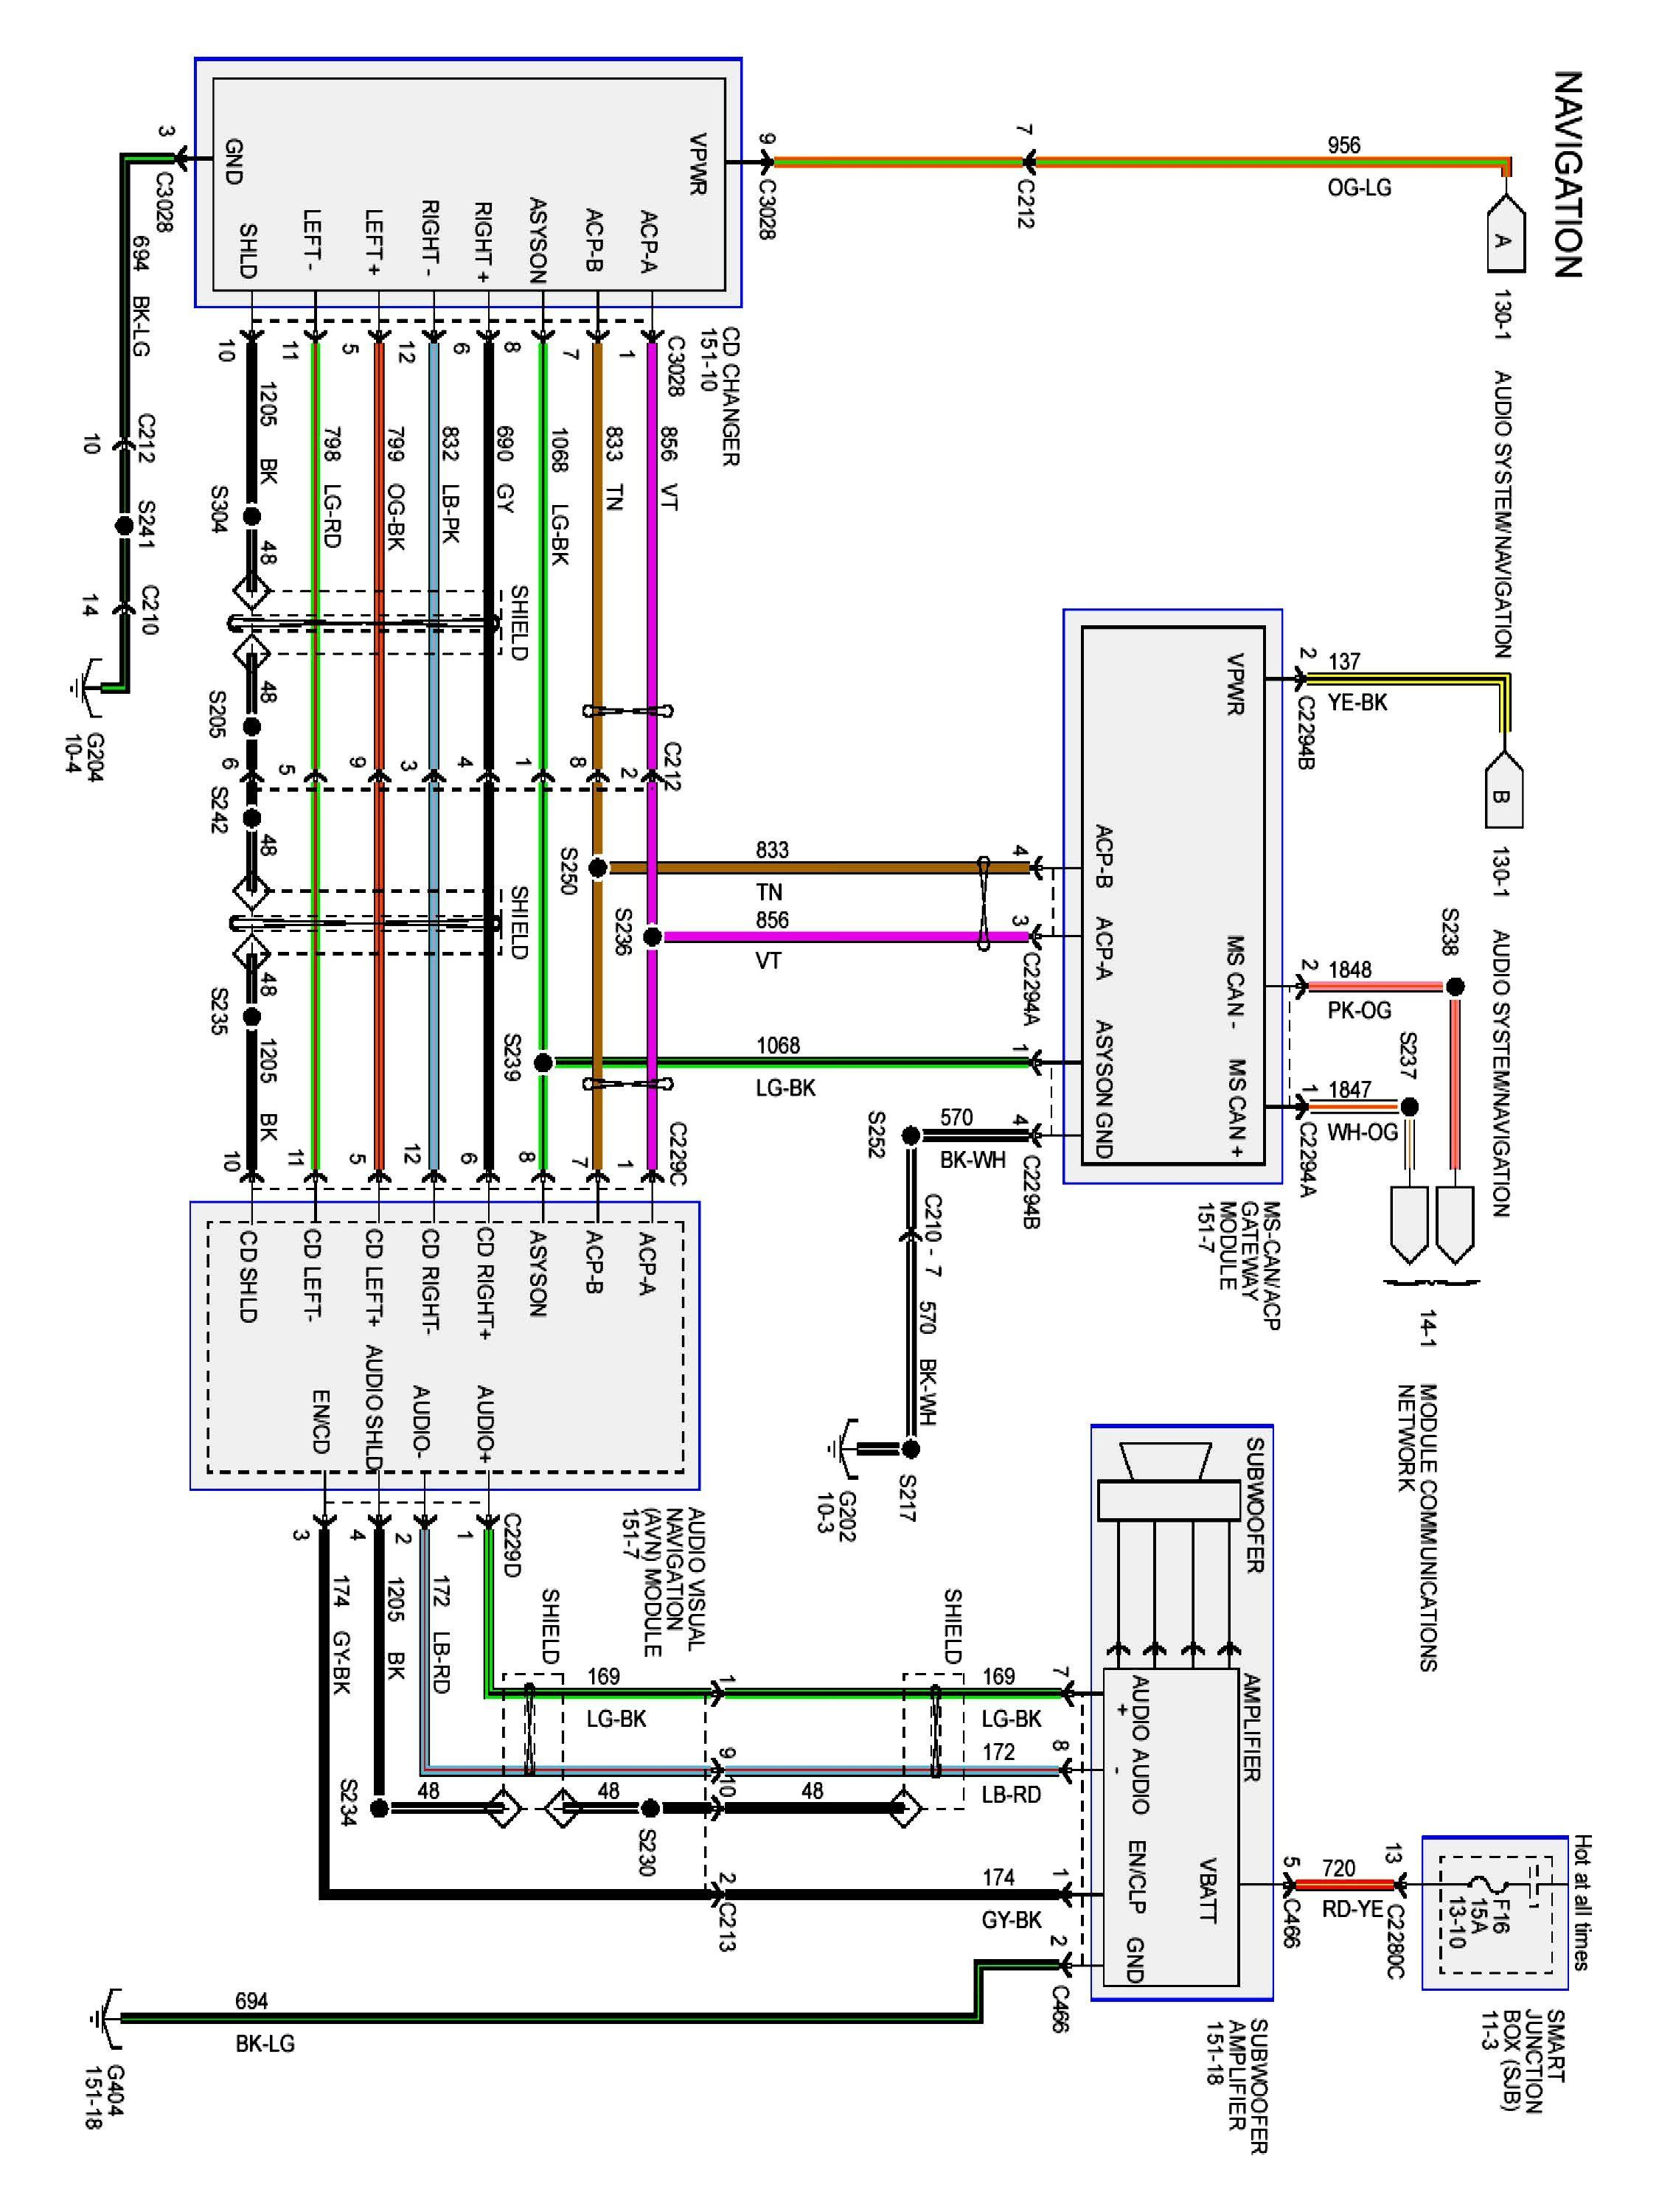 Wiring Diagram For 2007 Camry Jbl Amp Wiring Diagram Schematic Add Make A Add Make A Aliceviola It